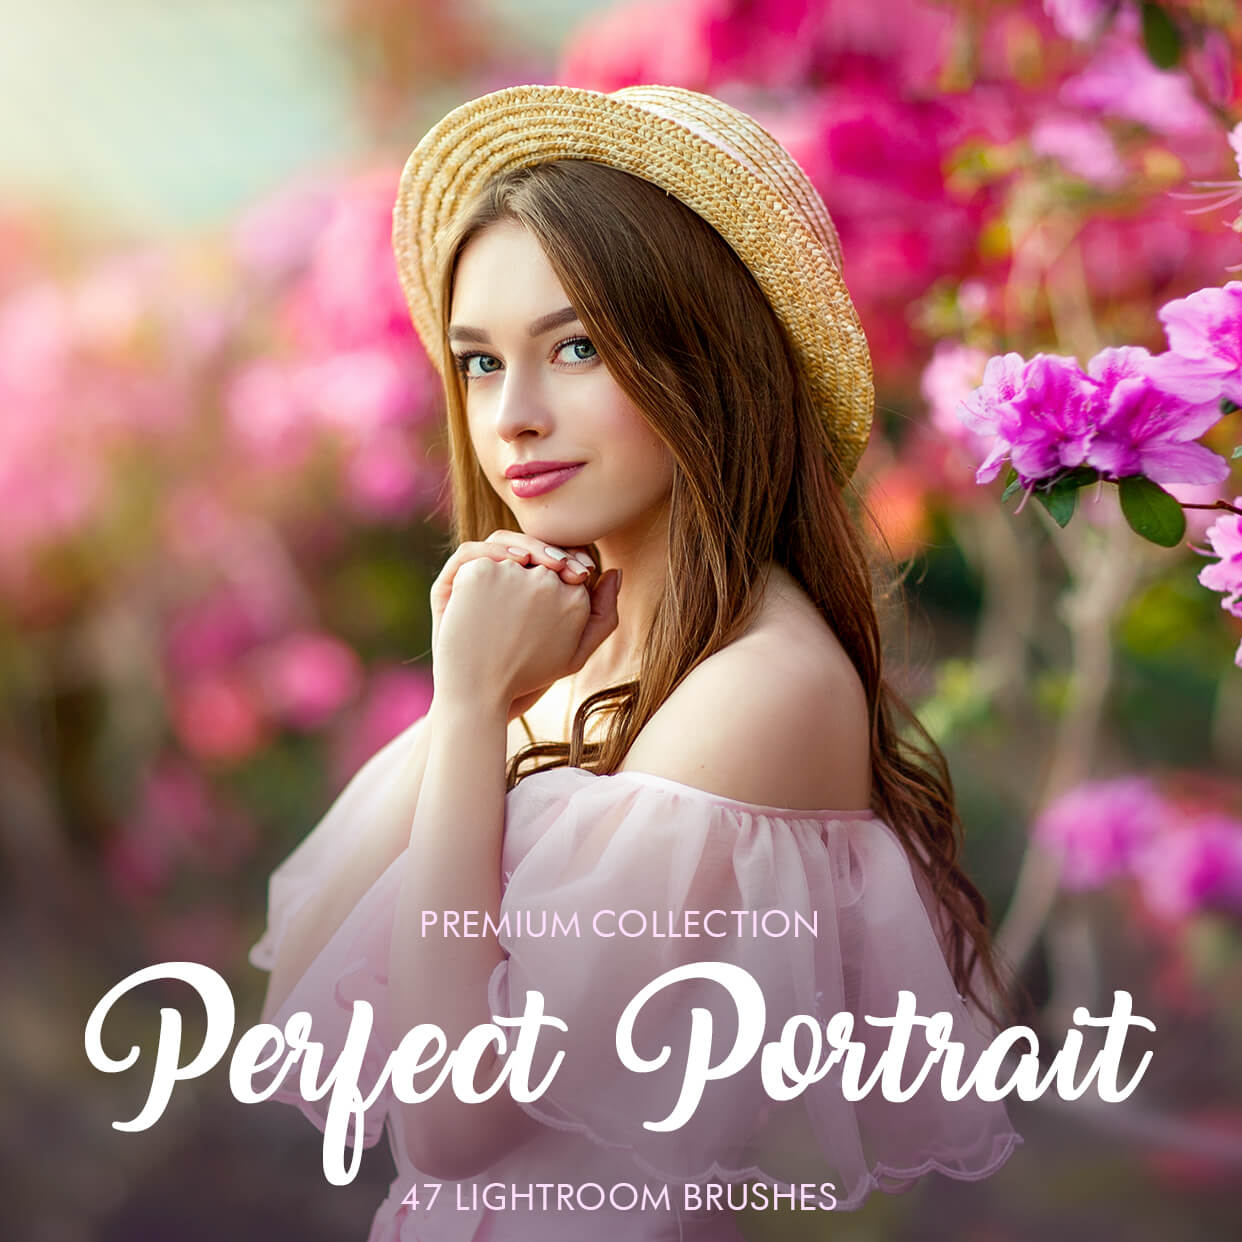 Lightroom Brushes for Portraits